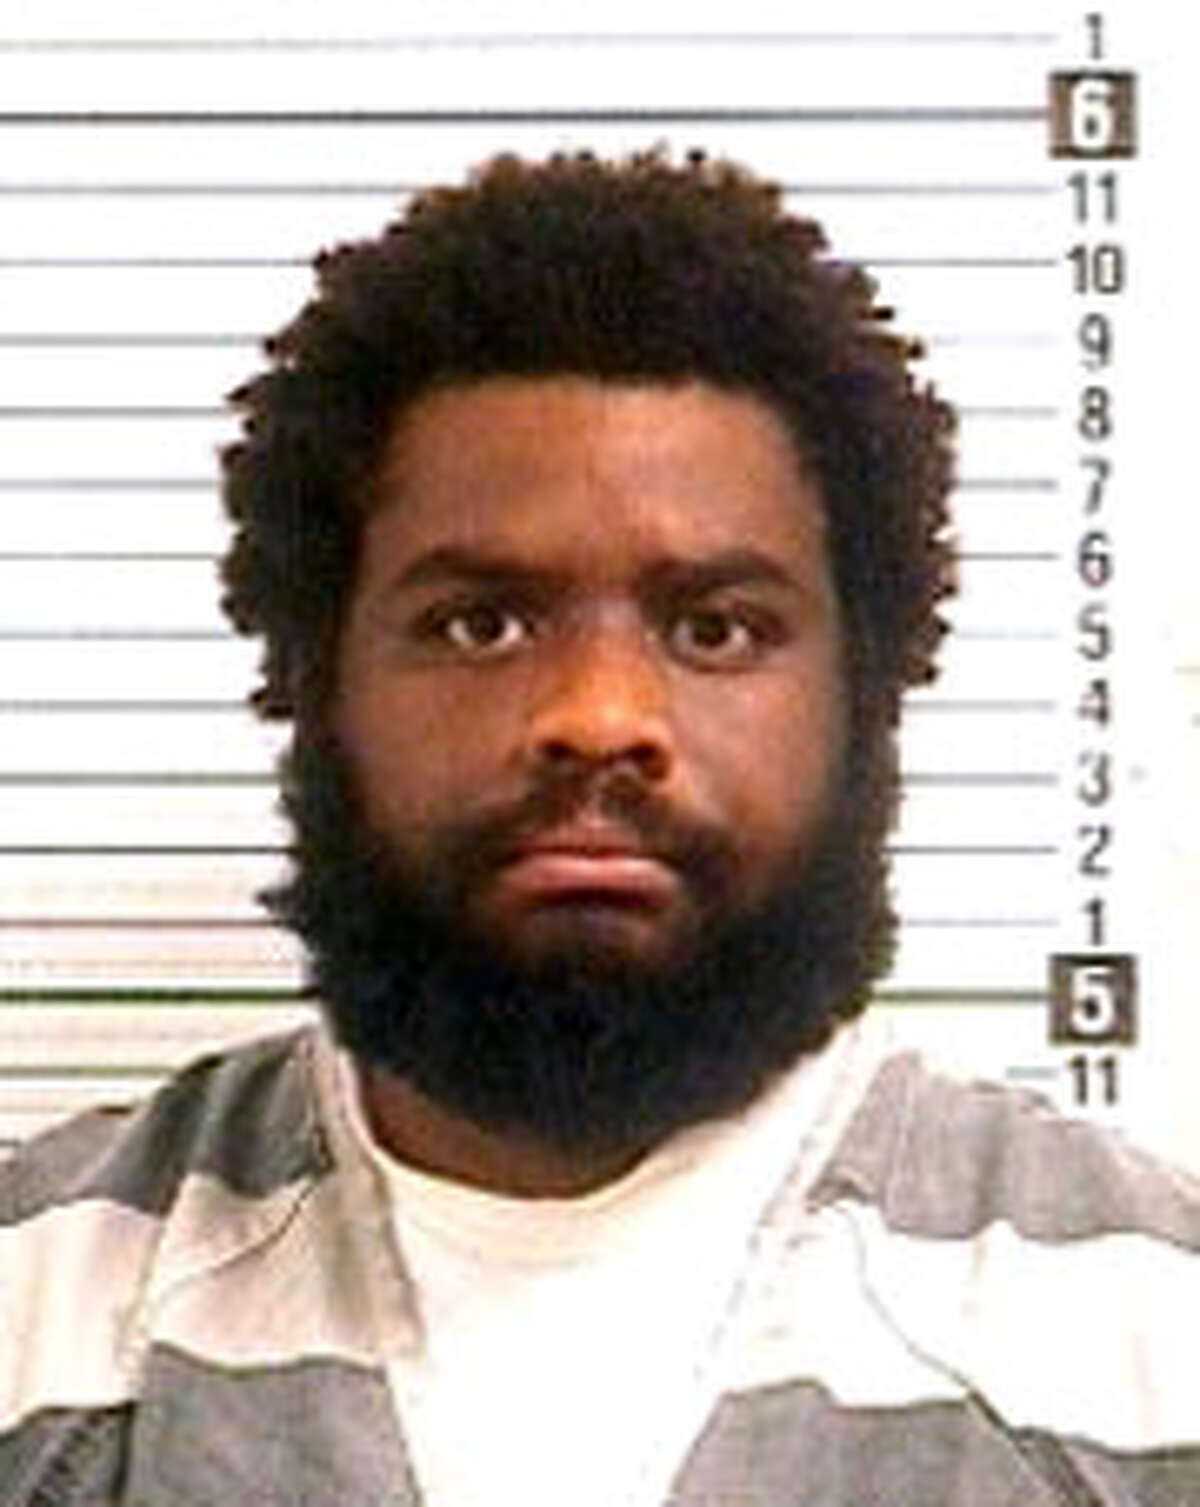 Tyree Lincoln Smith, 35, a Florida man has been arrested and charged with murder after police say he hacked Angel ìTun Tunî Gonzalez to death in a Bridgeport apartment and then mutilated the body. He was being held in Florida pending extradition to Connecticut.